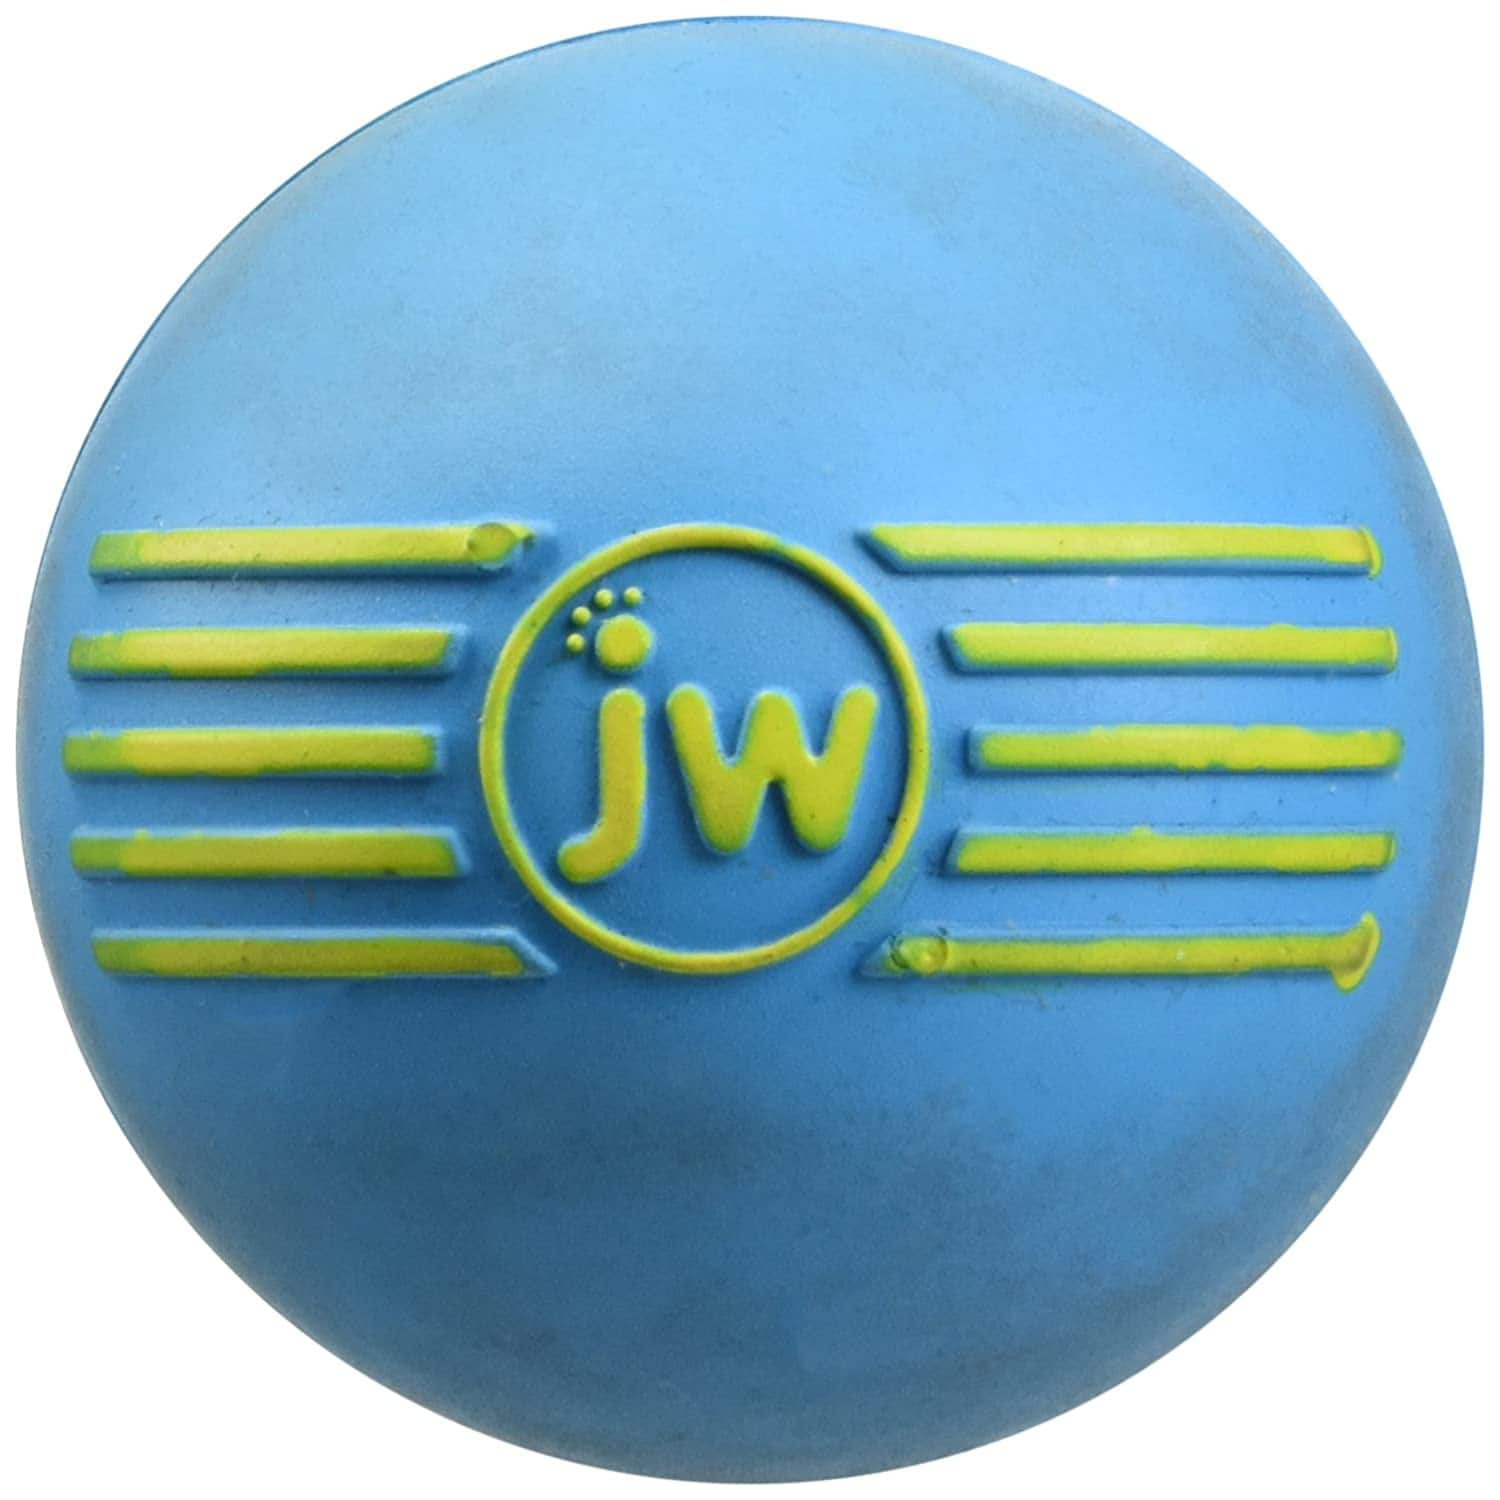 JW Pet iSqueak Ball Rubber Dog Toy $2.68 & More - Amazon